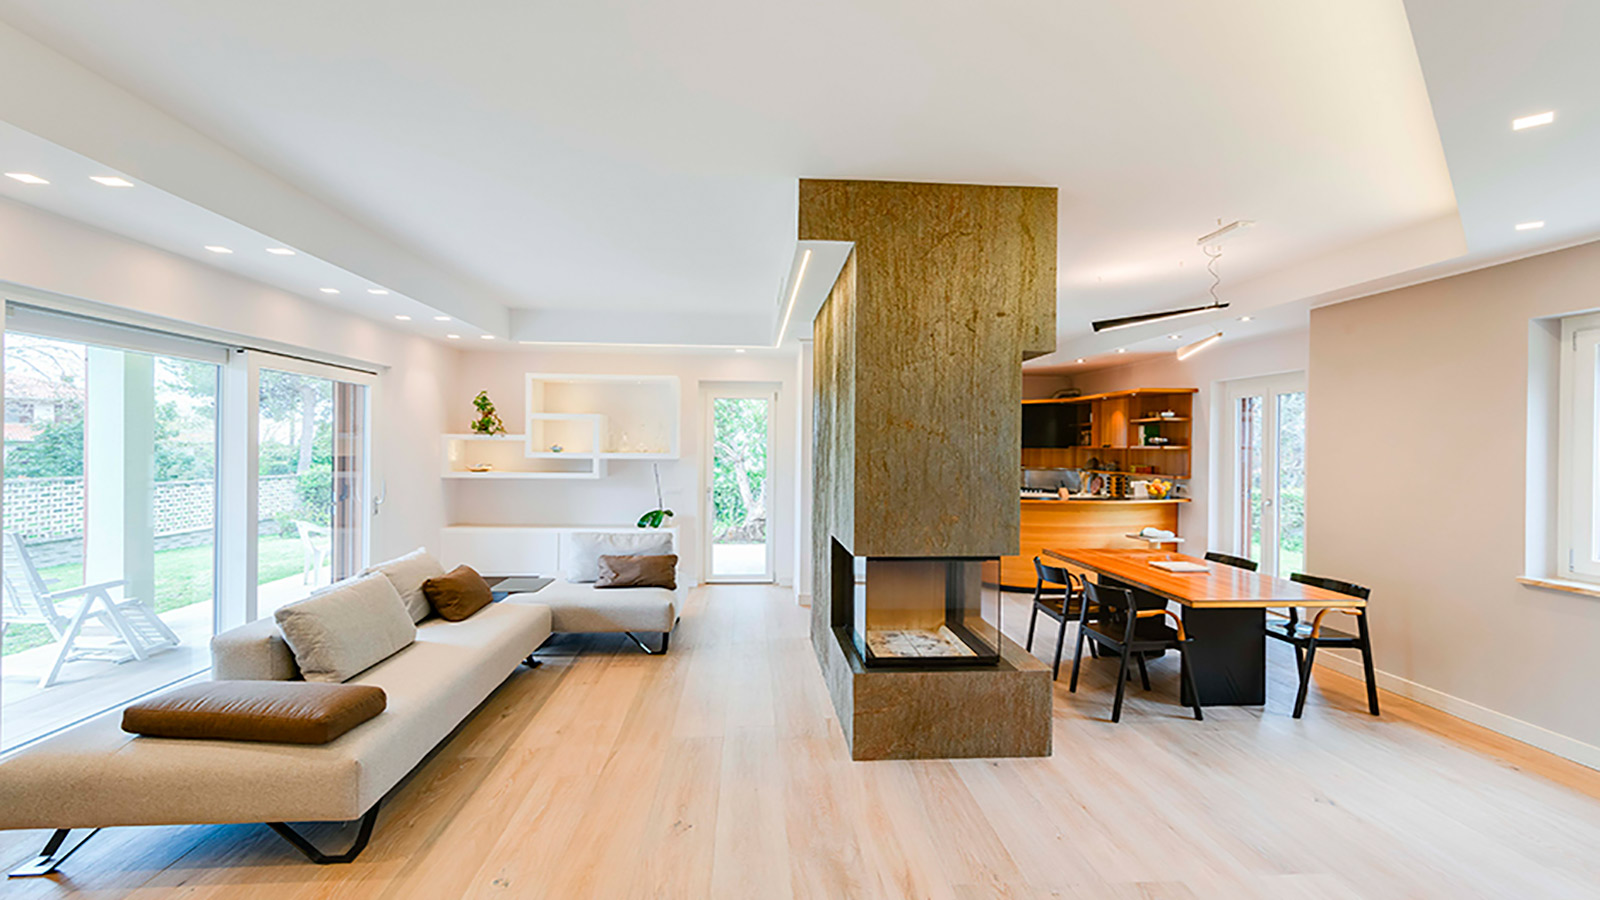 5 Tips to Optimise Space In Your Home